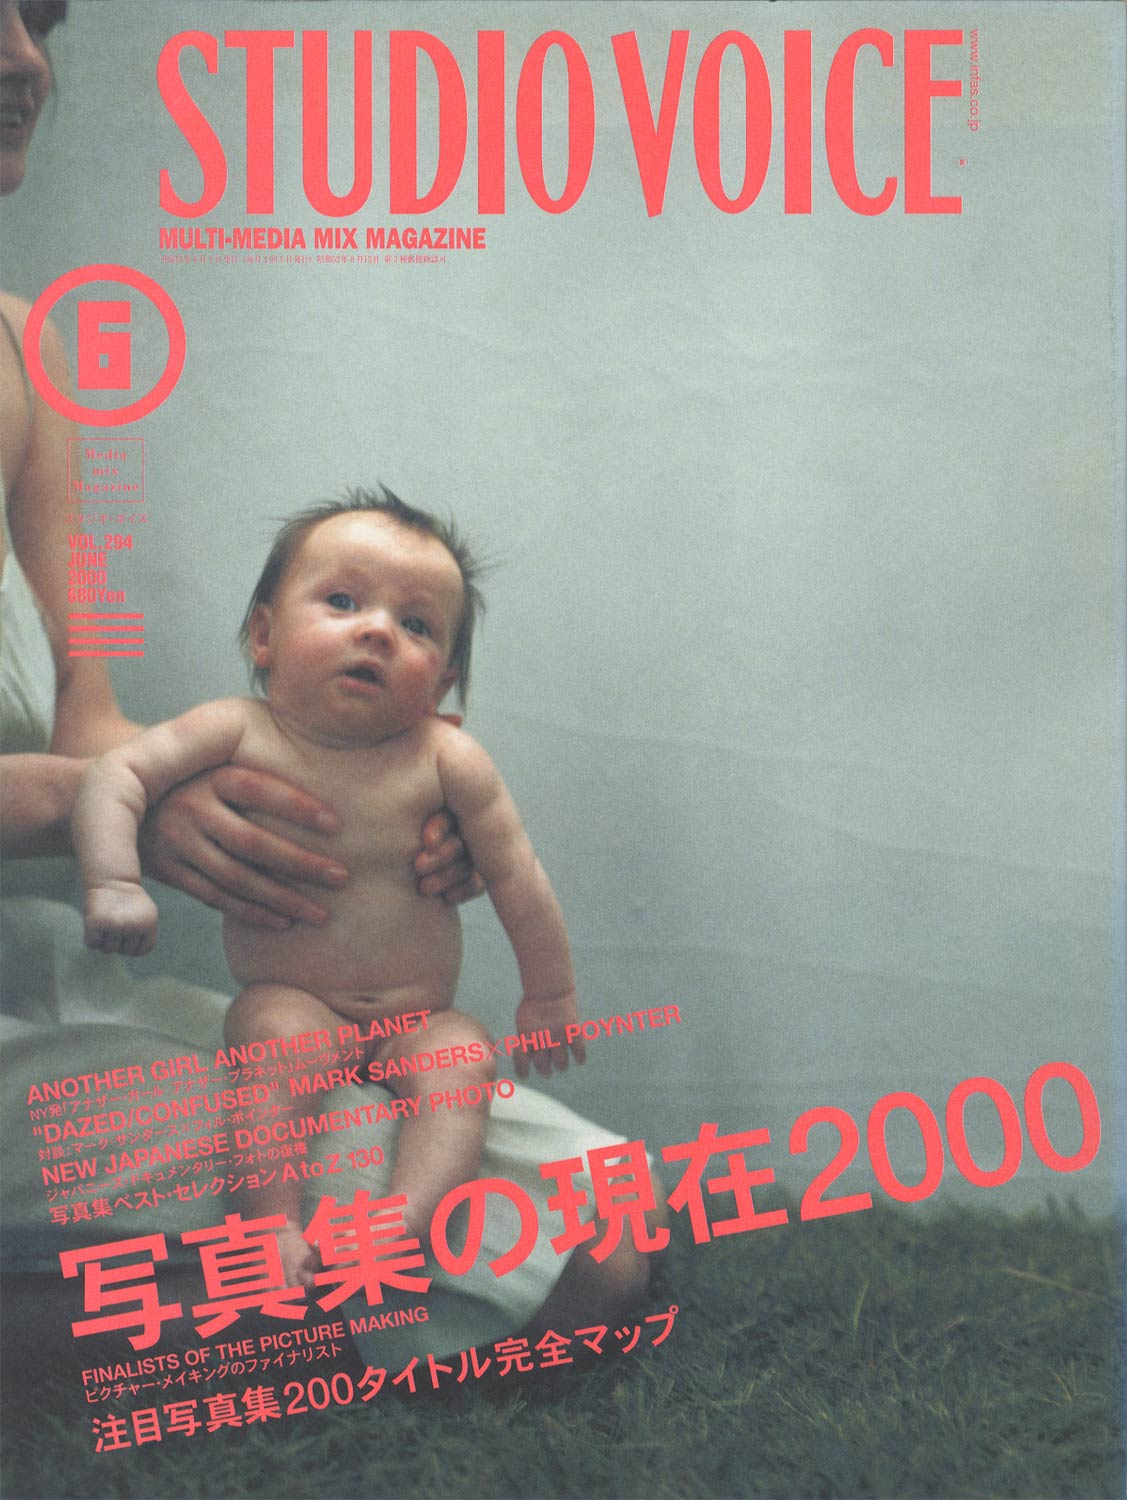 STUDIO VOICE MULTI-MEDIA MIX MAGAZINE/スタジオ・ボイス 2000年6月号 VOL.294